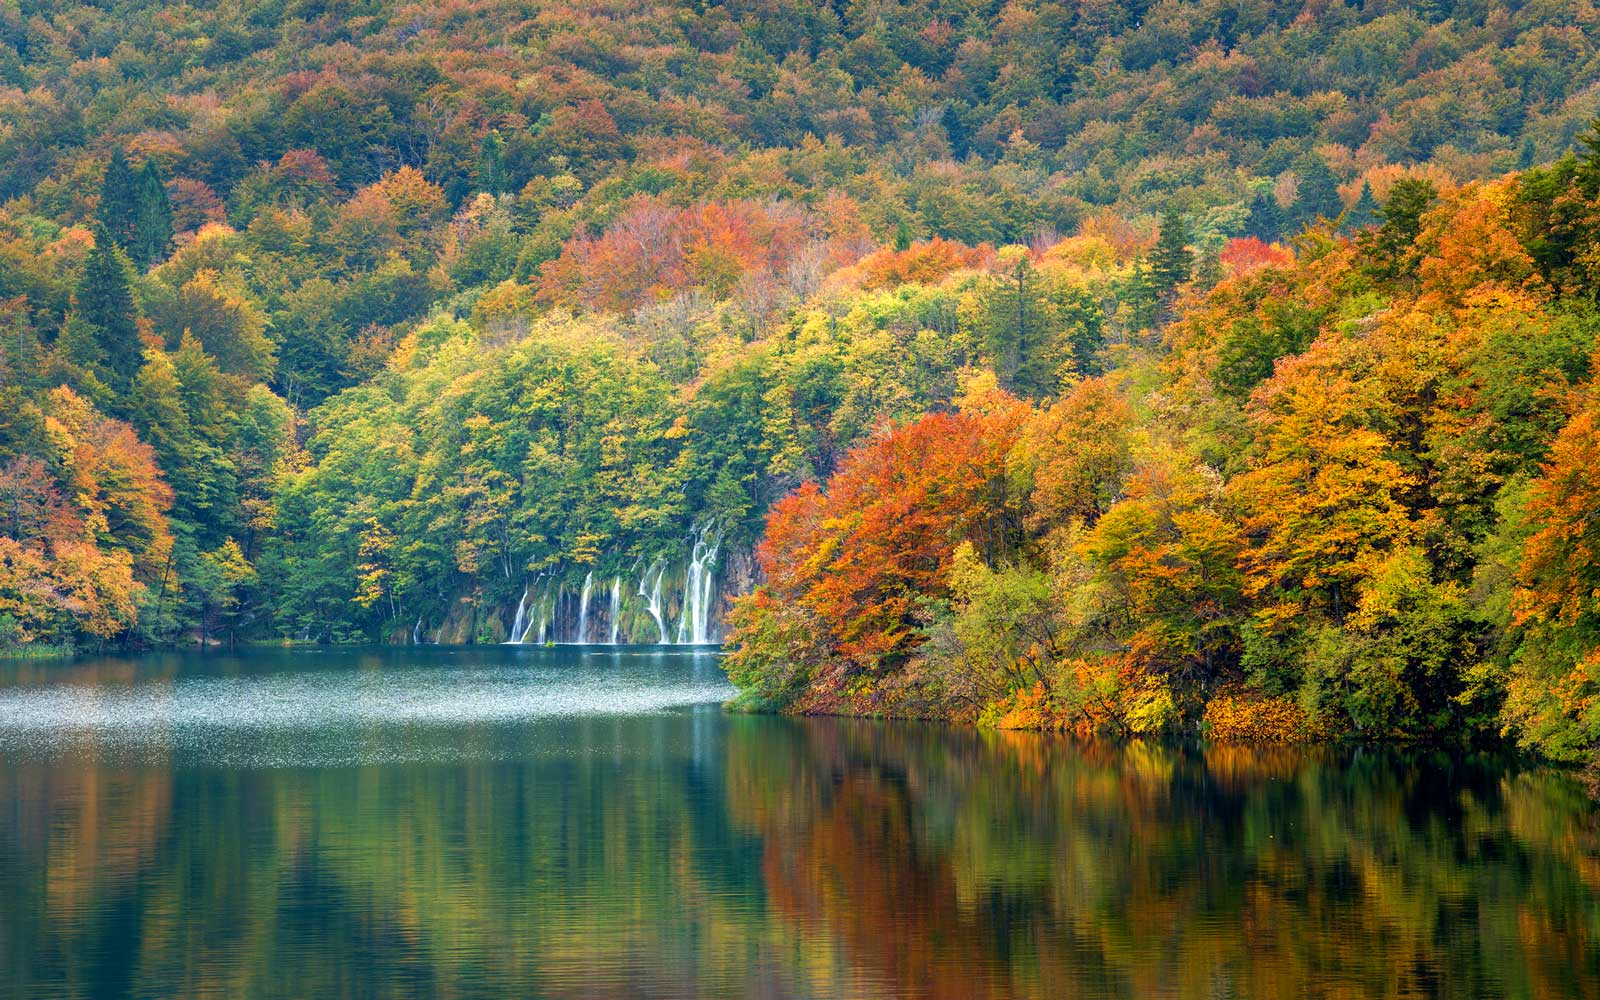 Plitvice Lakes National Park: Croatia